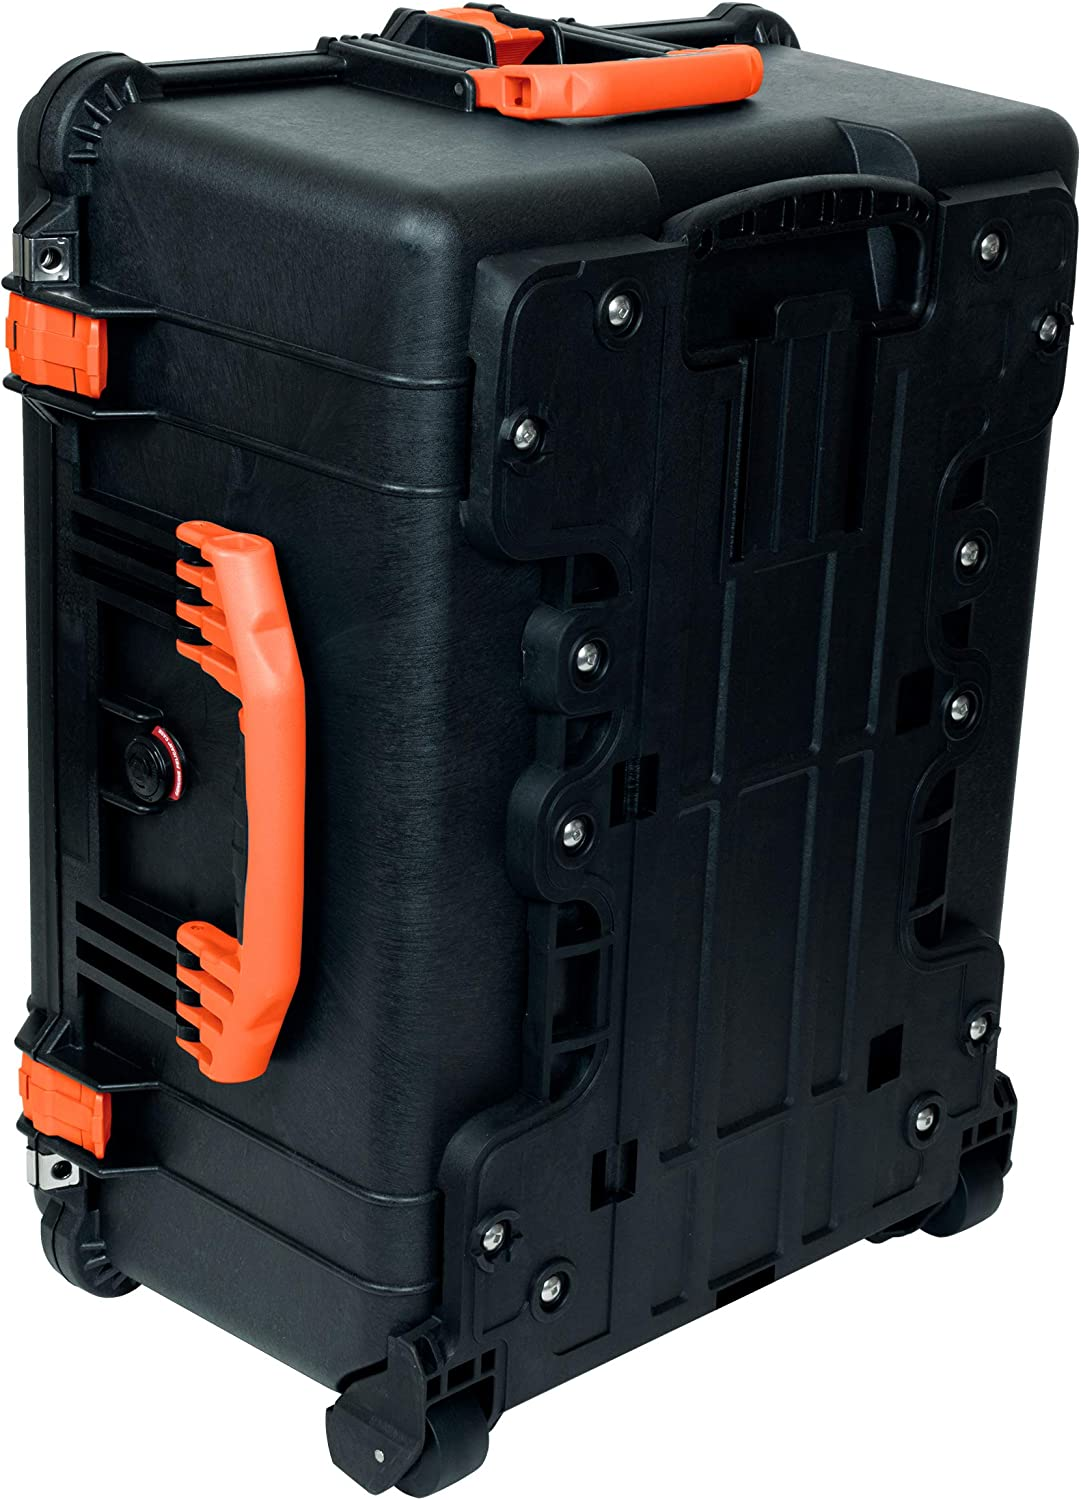 Comes with Foam /& with Wheels. Pelican 1610 Black /& Orange Case